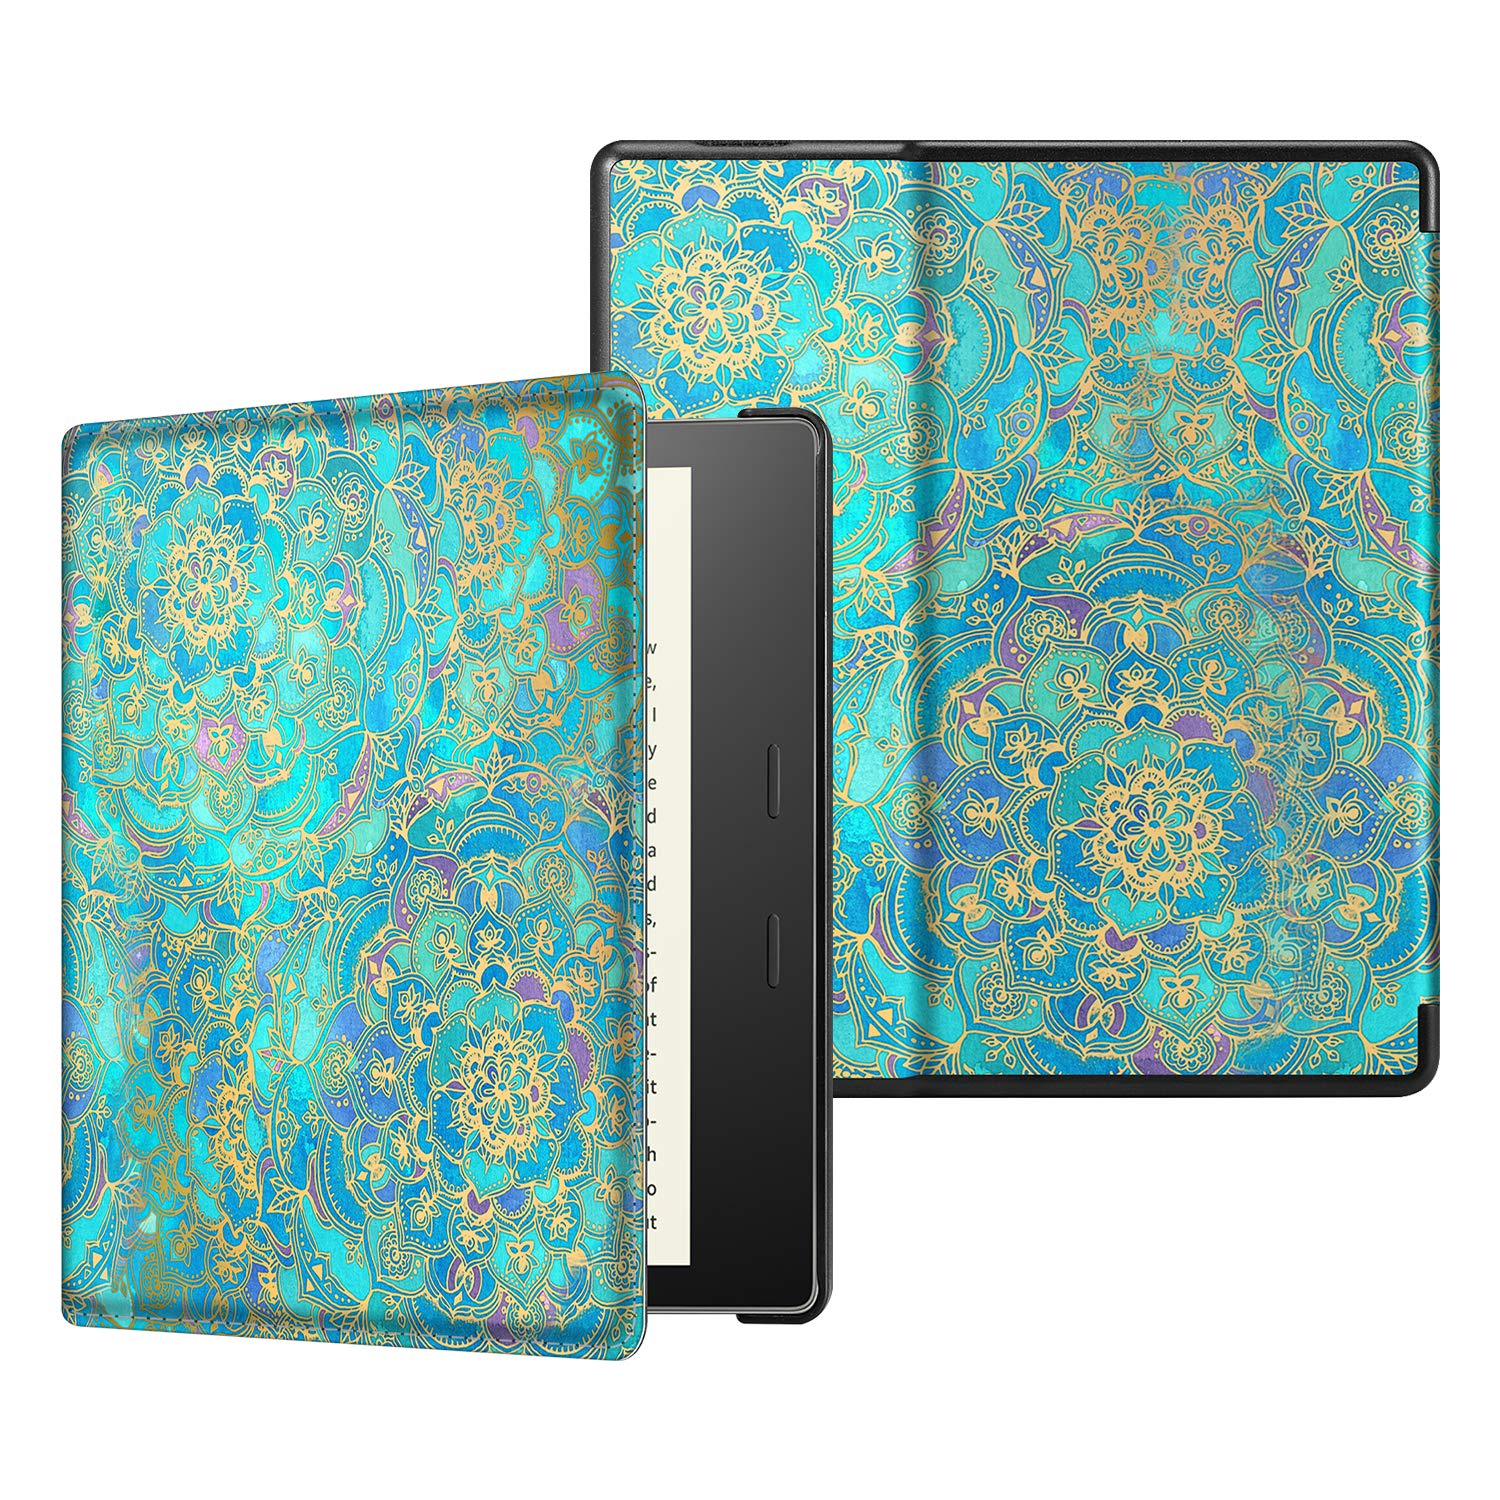 CaseBot Slimshell Case for All-New Kindle Oasis (10th Generation, 2019 Release and 9th Generation, 2017 Release) - Premium PU Leather Lightweight Protective Cover with Auto Wake Sleep, Shades of Blue